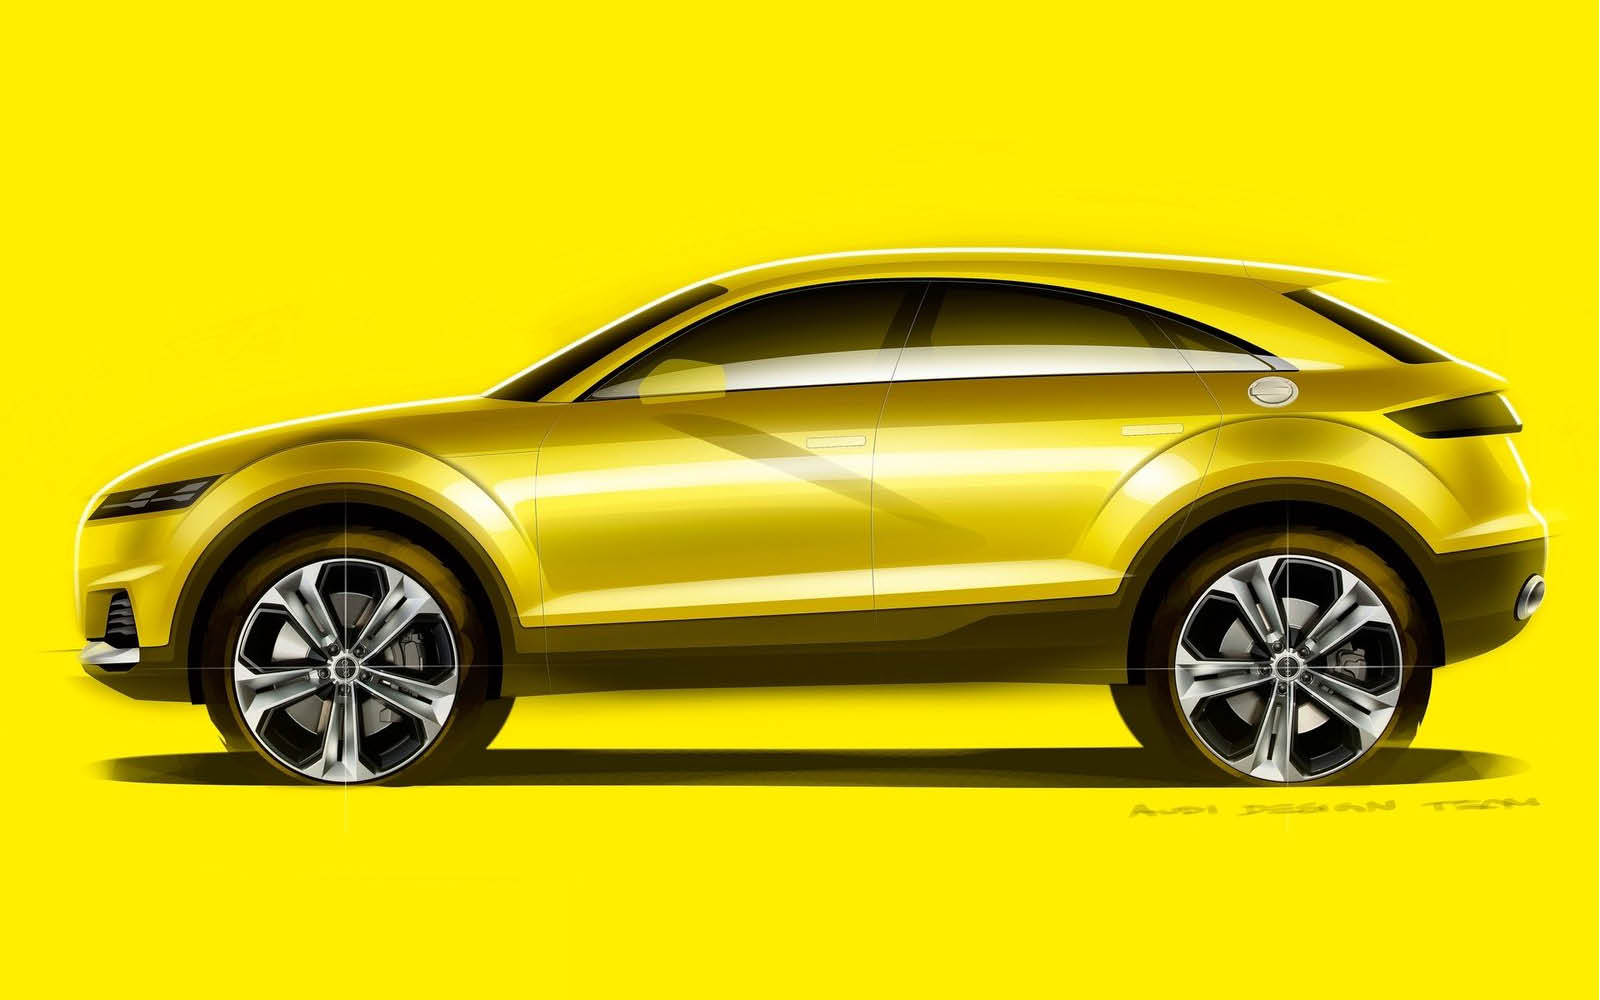 2019 Audi TT Offroad Concept photo - 4